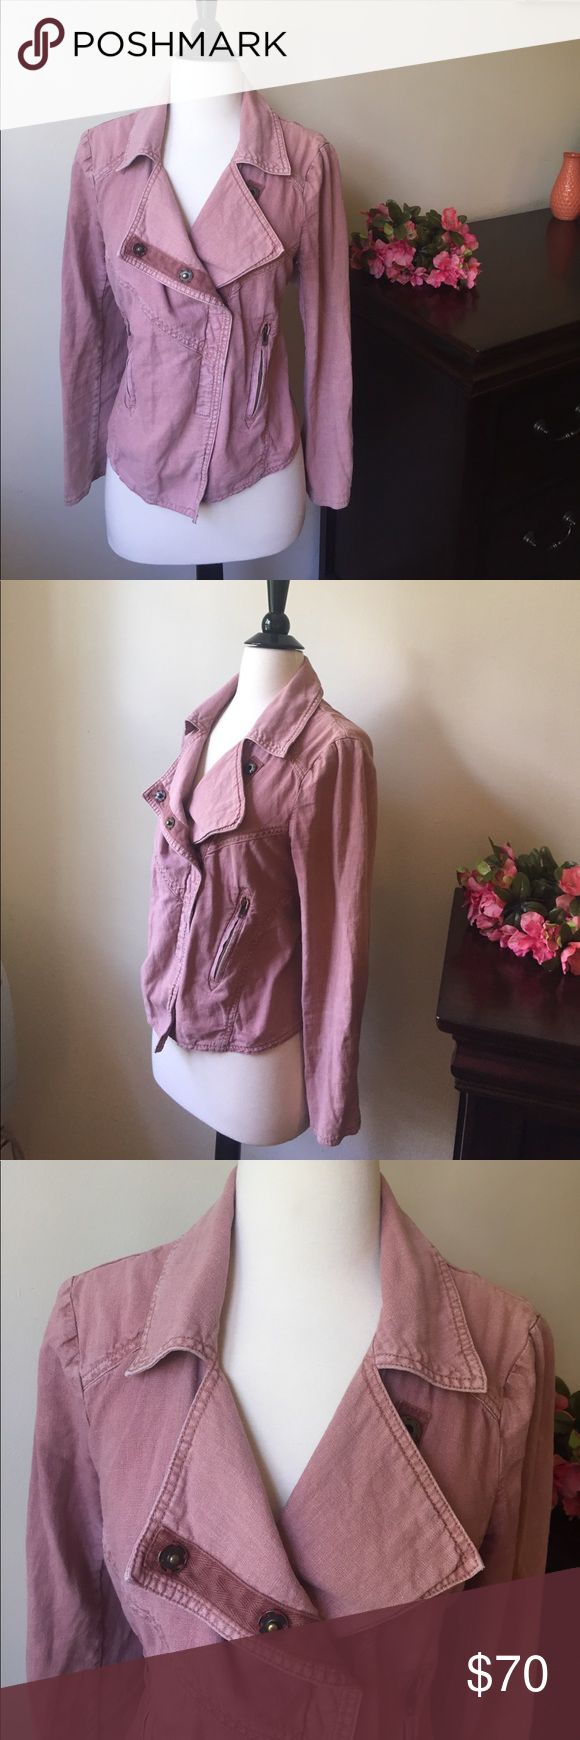 Pink Free People Jacket - Size Small (EUC) Pink Free People Jacket in excellent used condition. EUC Free People Jackets & Coats